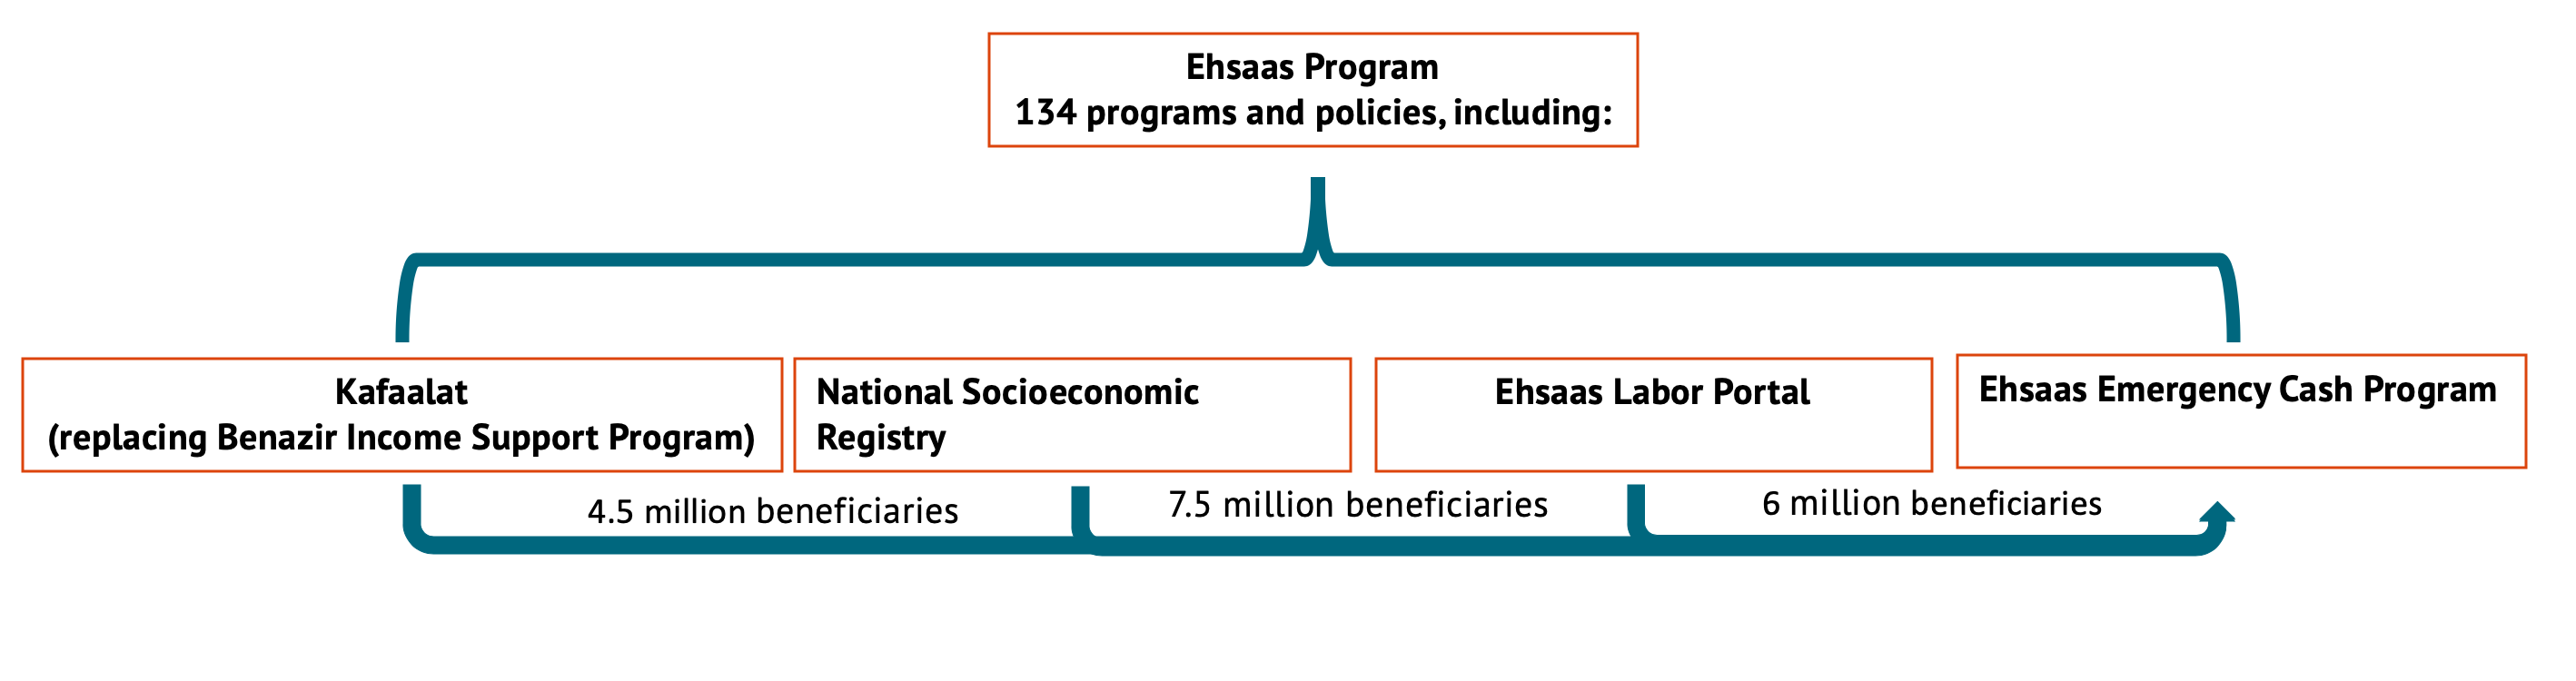 A graph showing the relationship of existing Ehsaas programming to Emergency Cash Transfer program